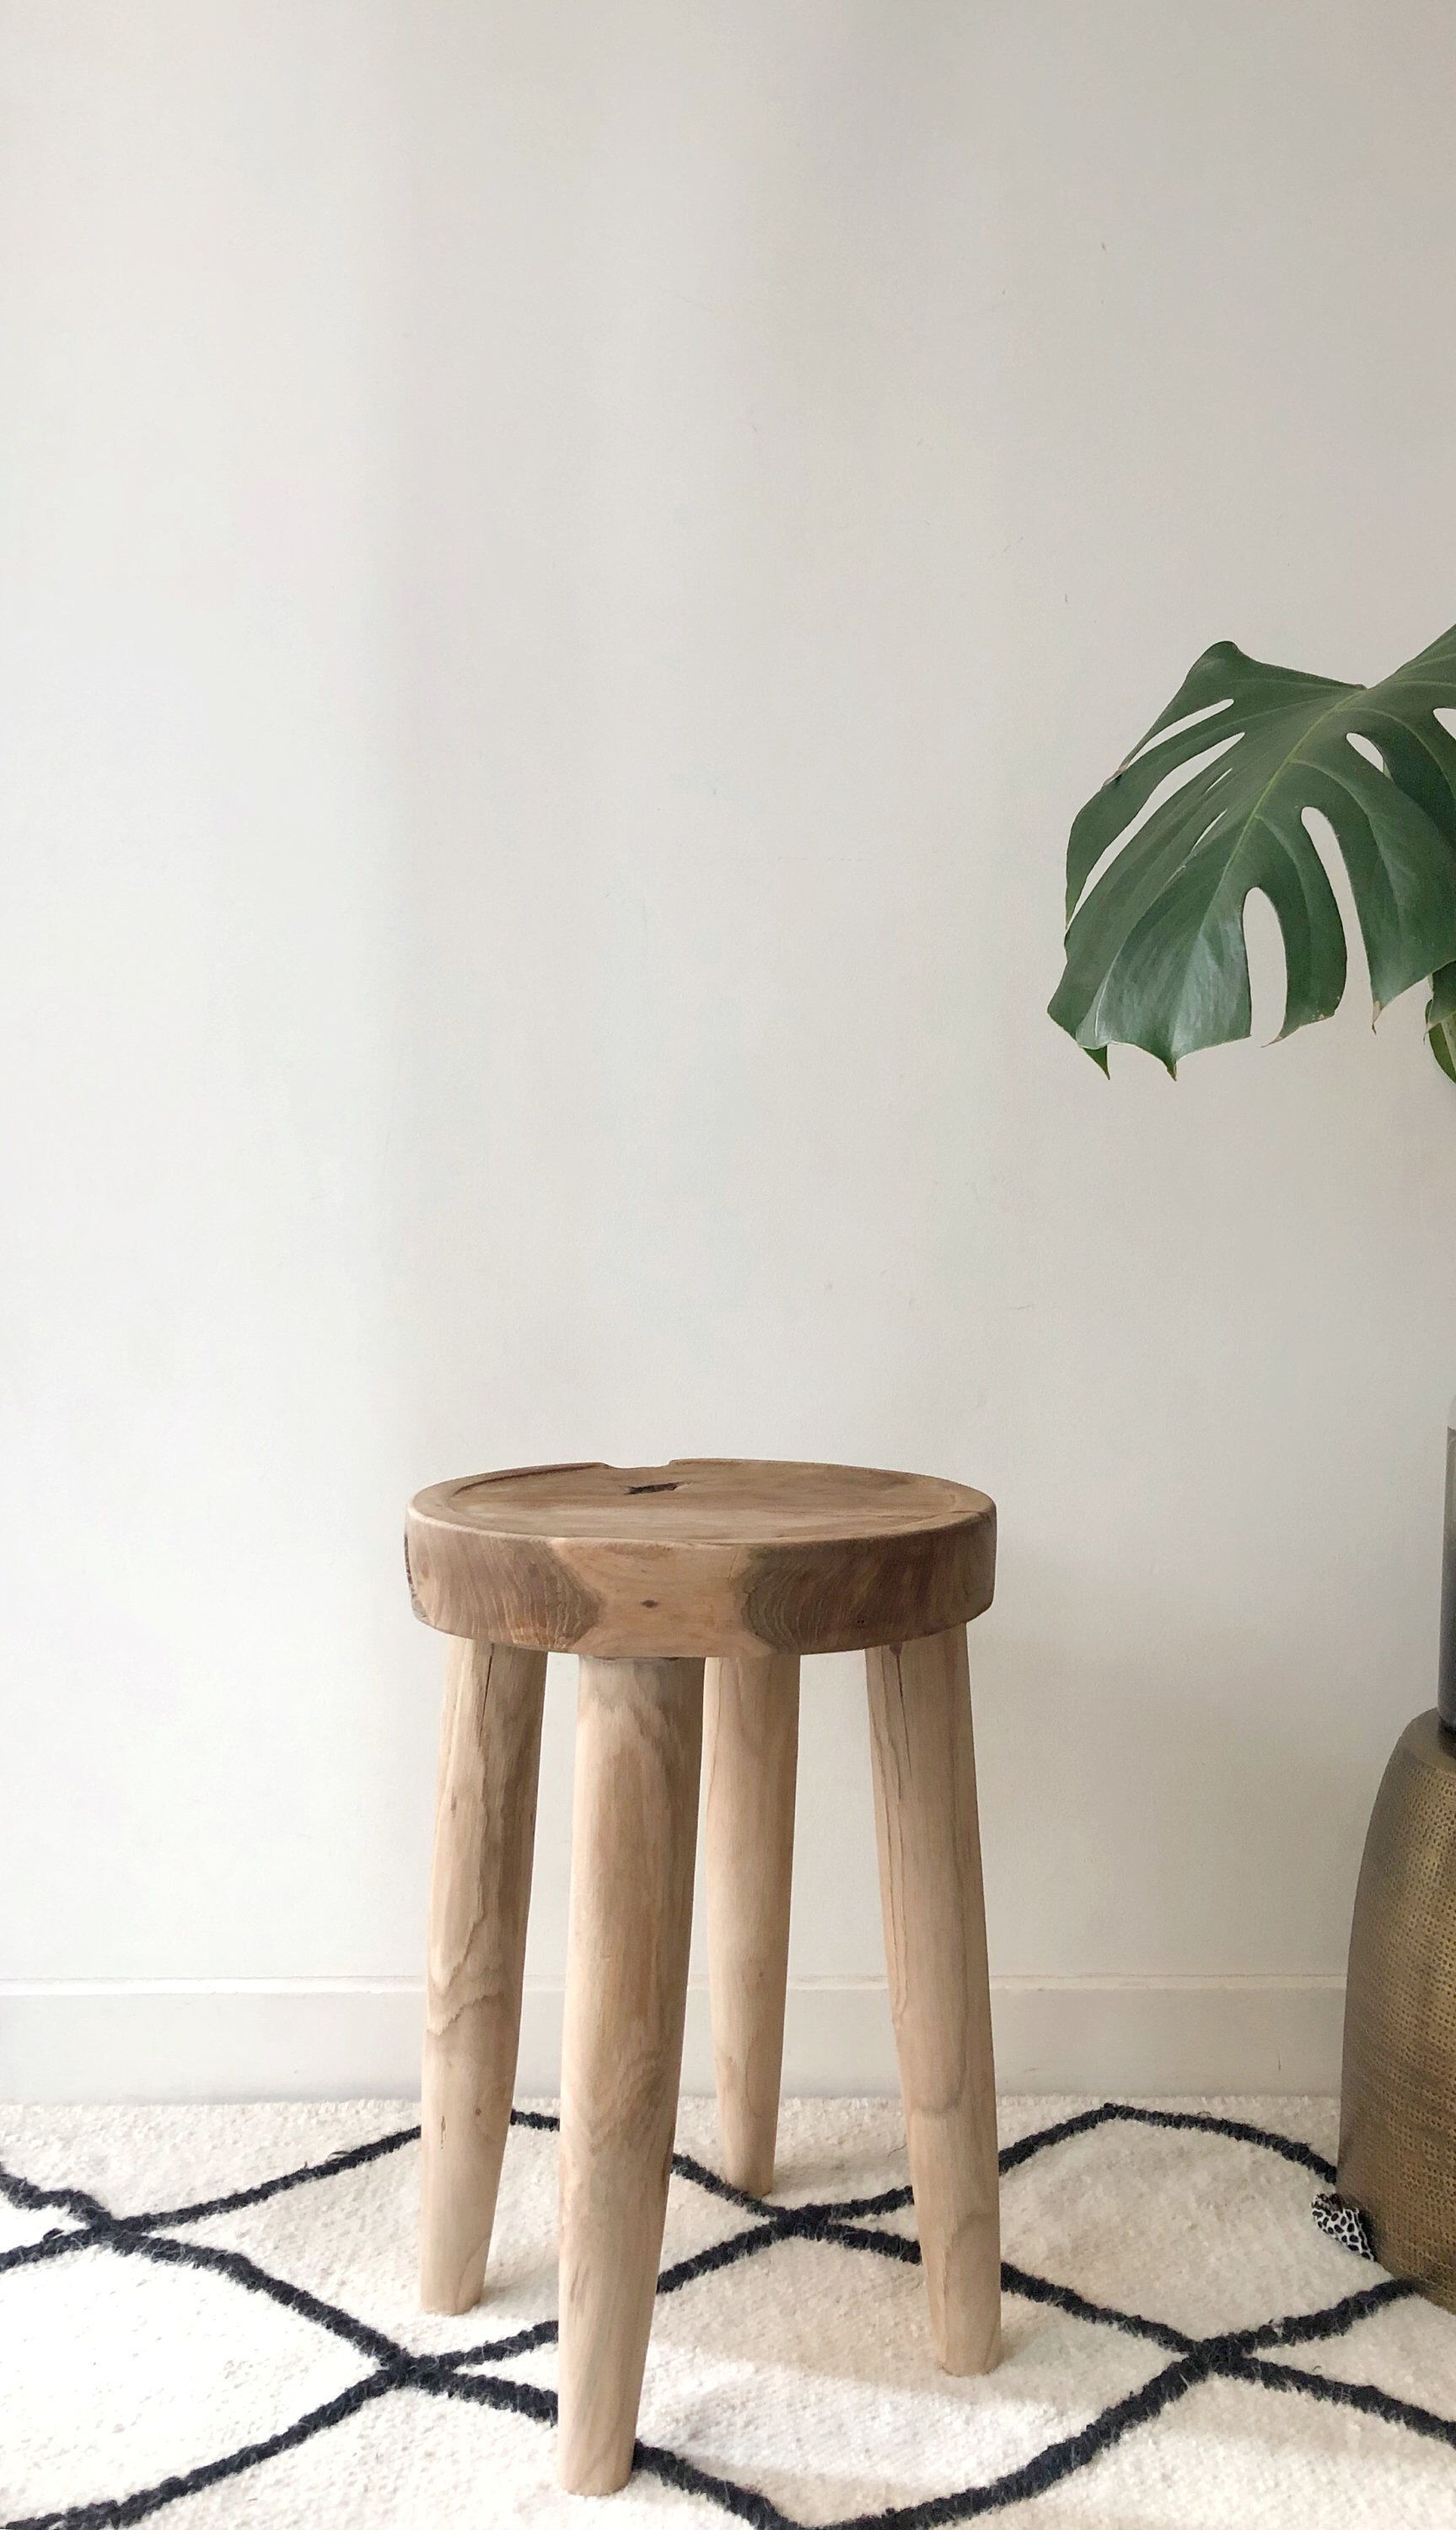 Wooden Side Table Solid Teak Organic Wood Stool Side Table Boho Raw Natural Stool Occasional Round Accent Table Wooden Side Table Lakehouse Decor Wood Stool